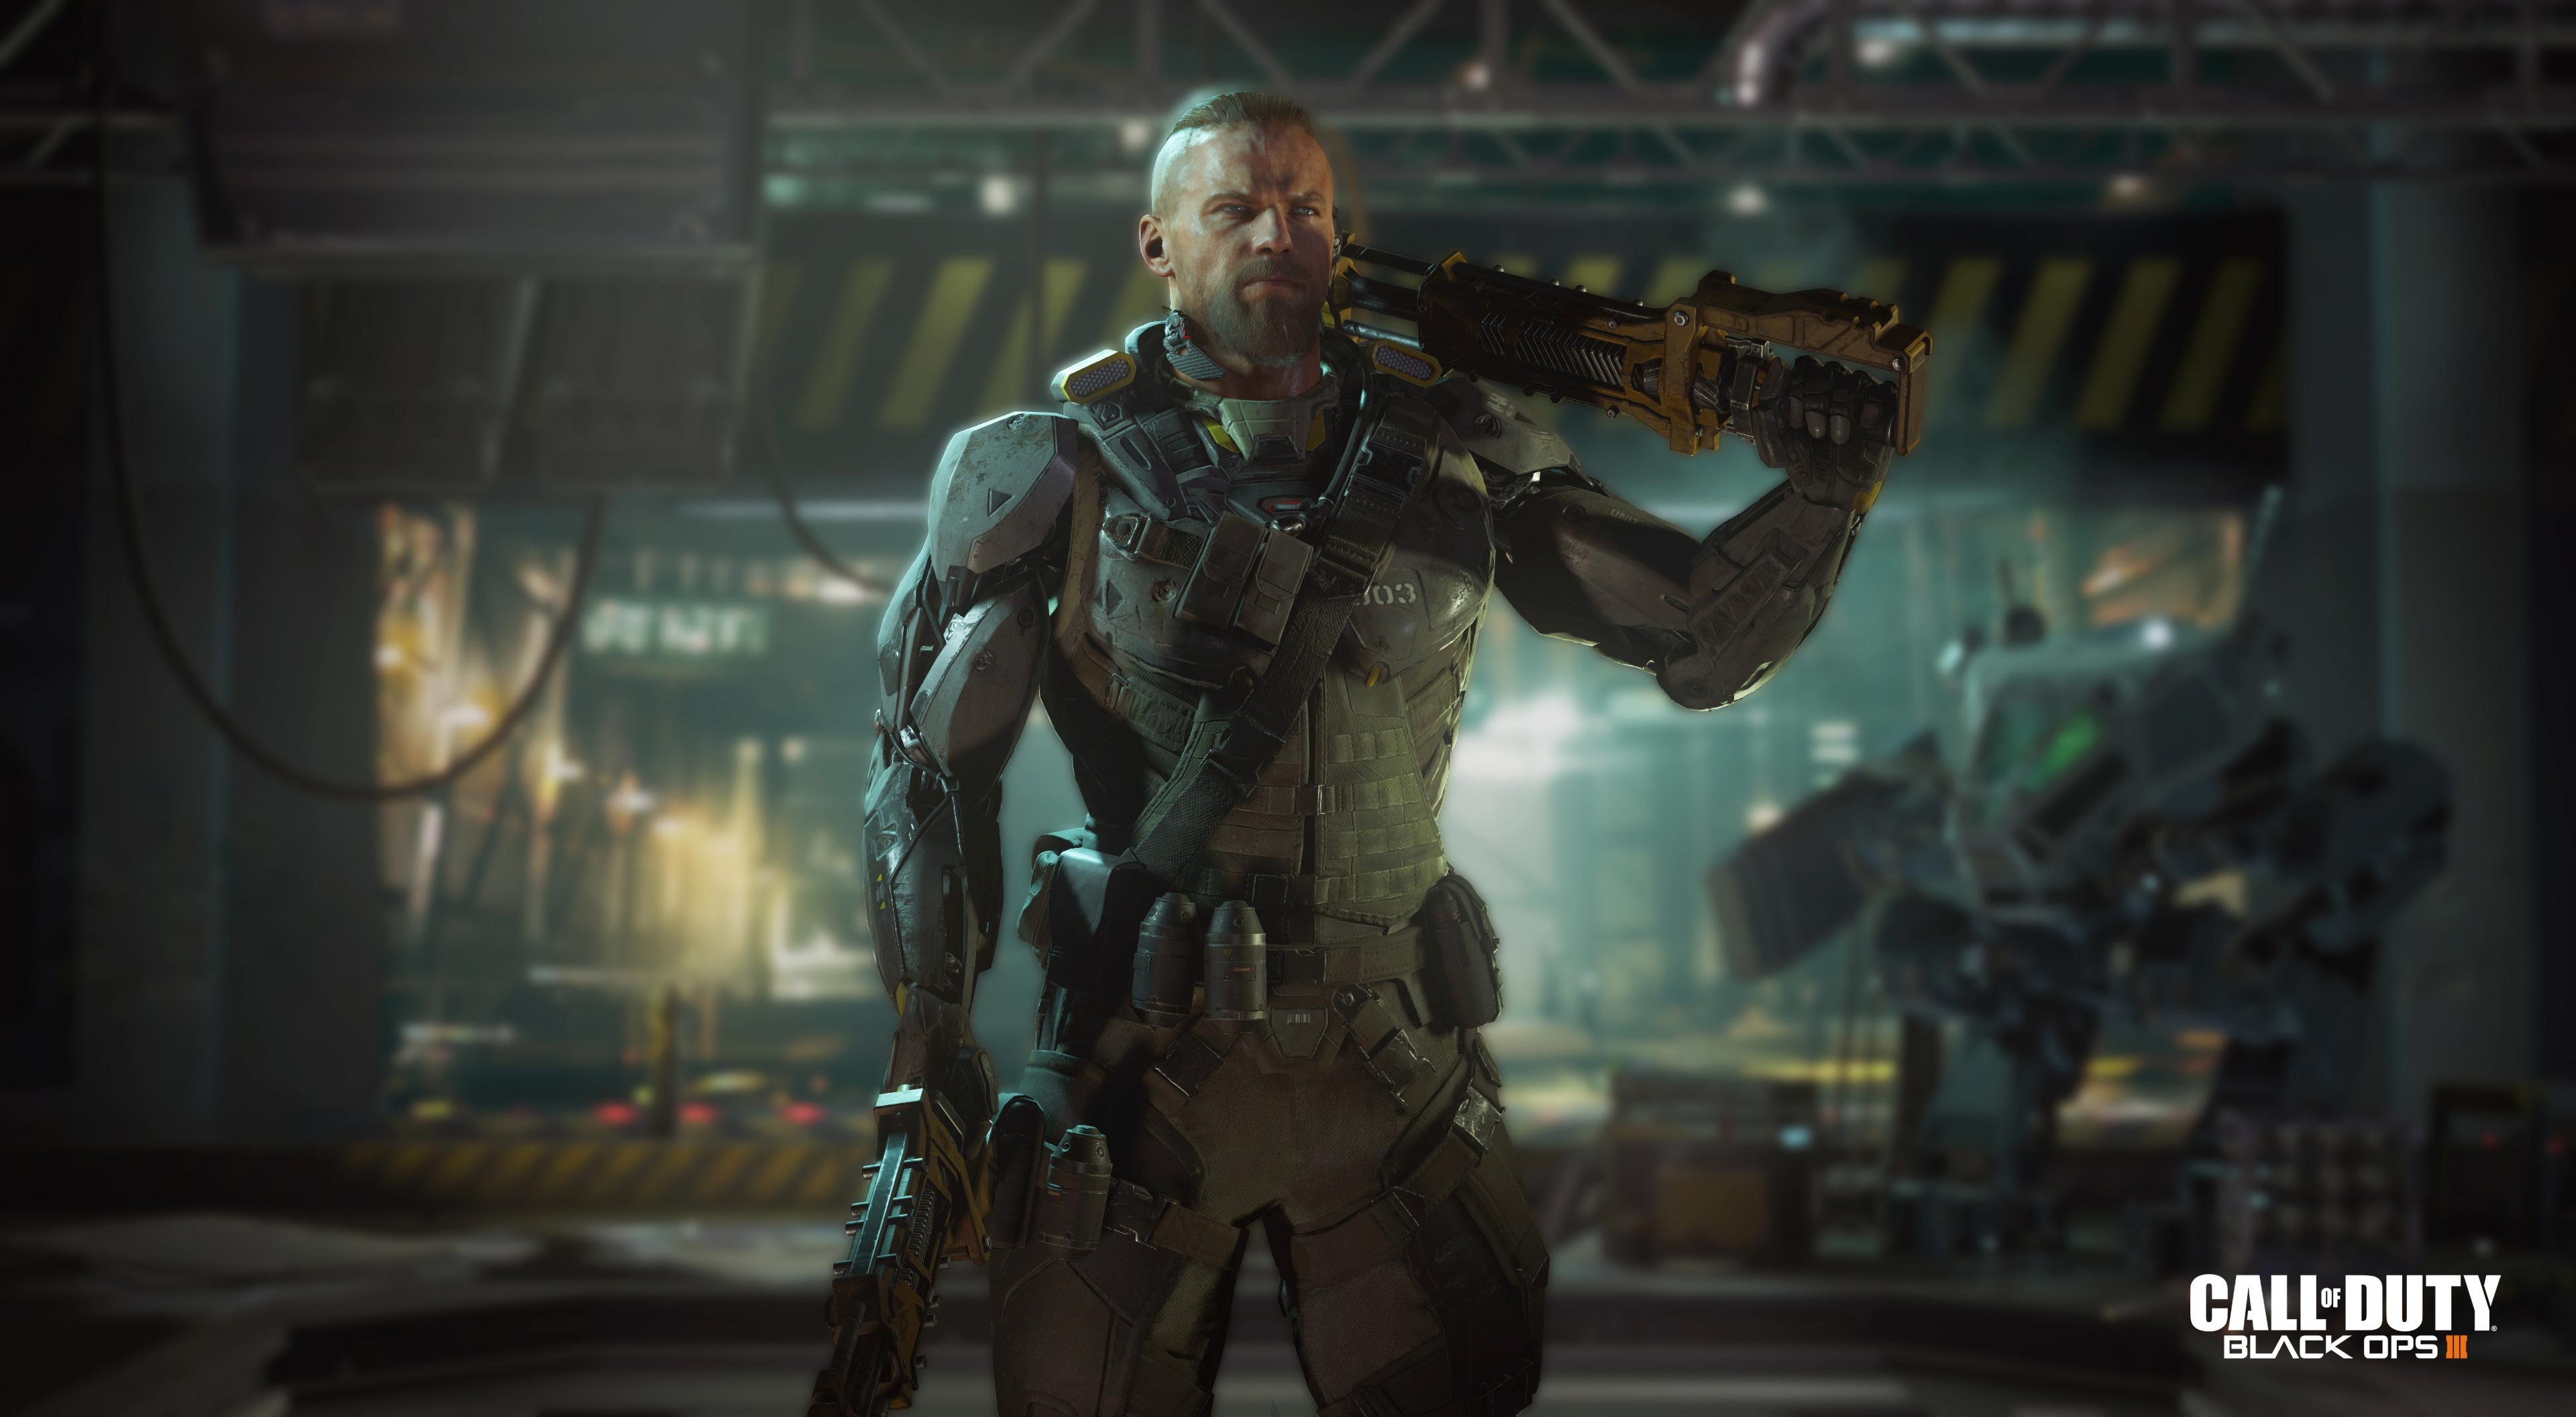 Call of Duty Black Ops 36